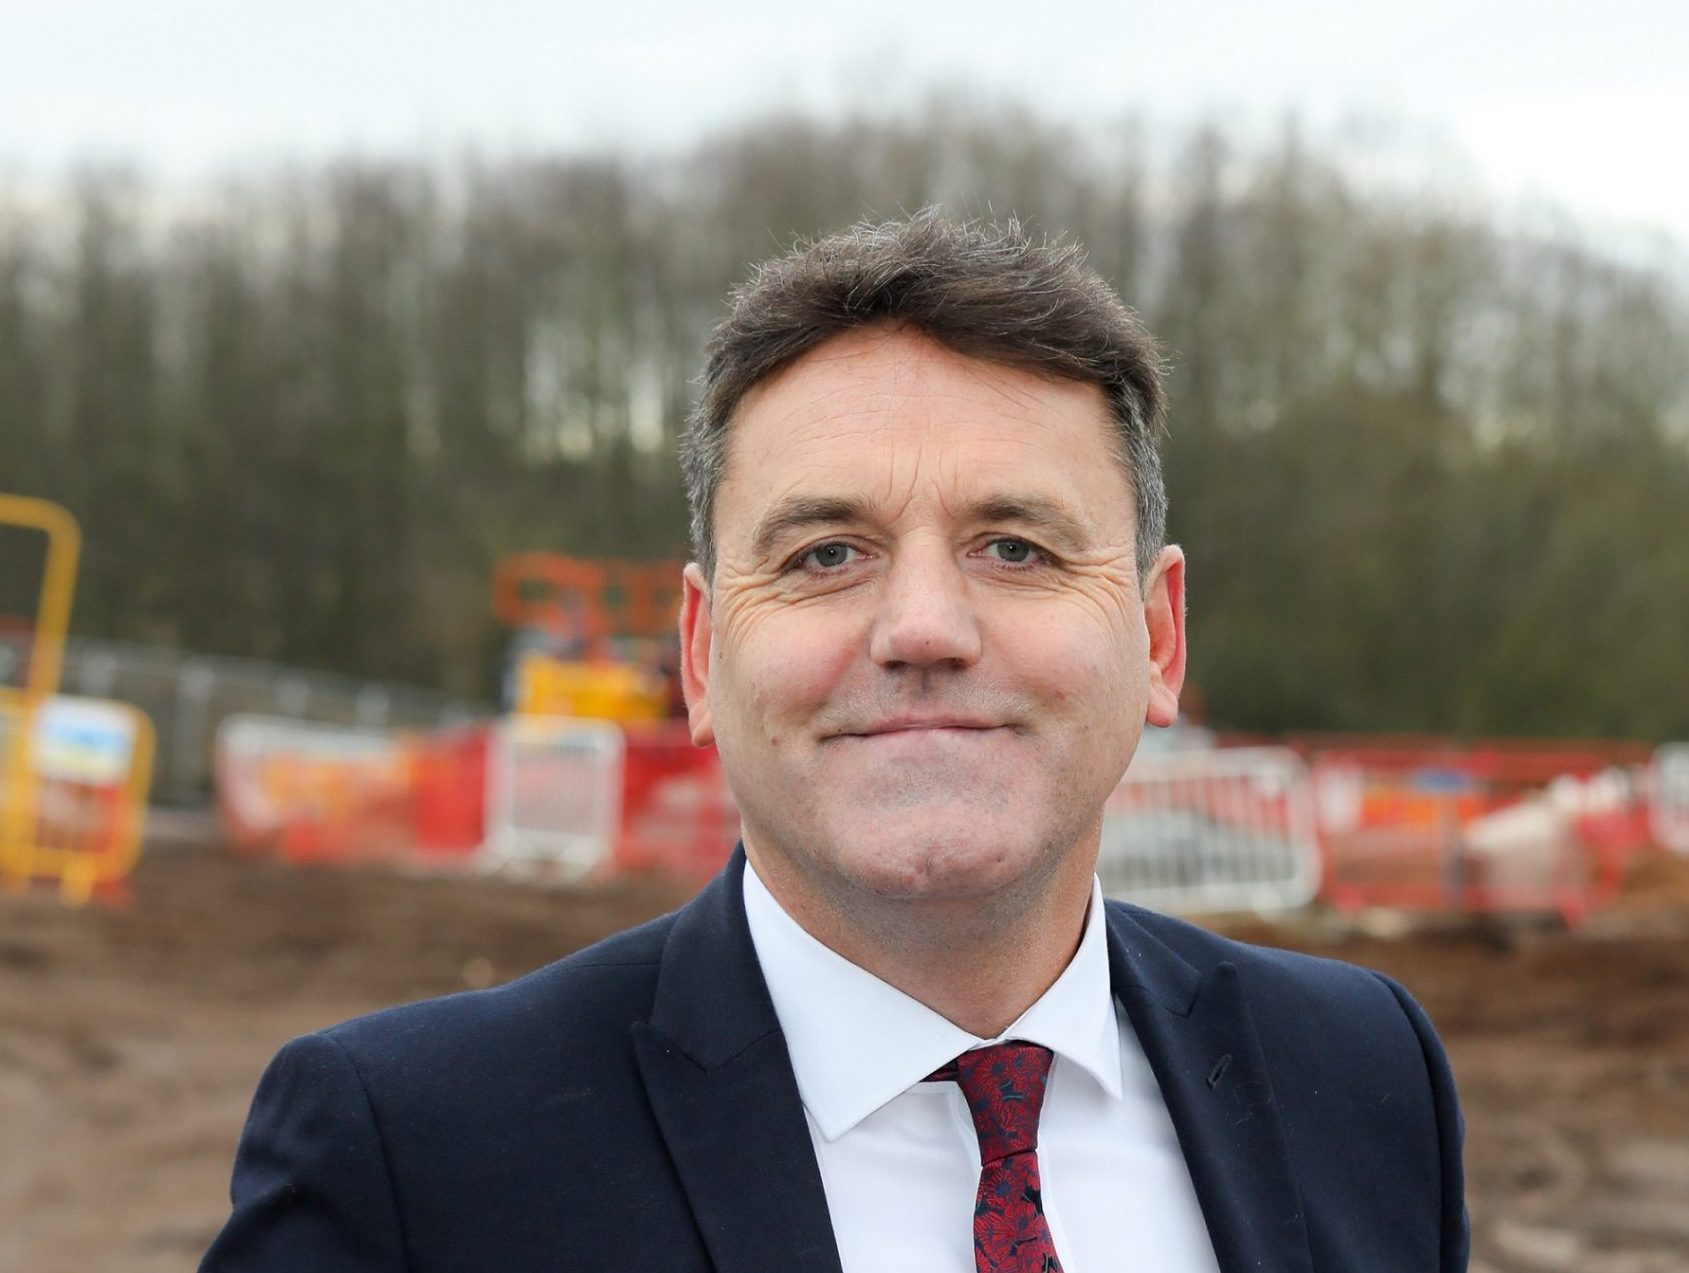 COLLABORATIVE APPROACH IS KEY TO DELIVERING MUCH NEEDED HOMES SAYS NORTHWEST HOUSEBUILDER